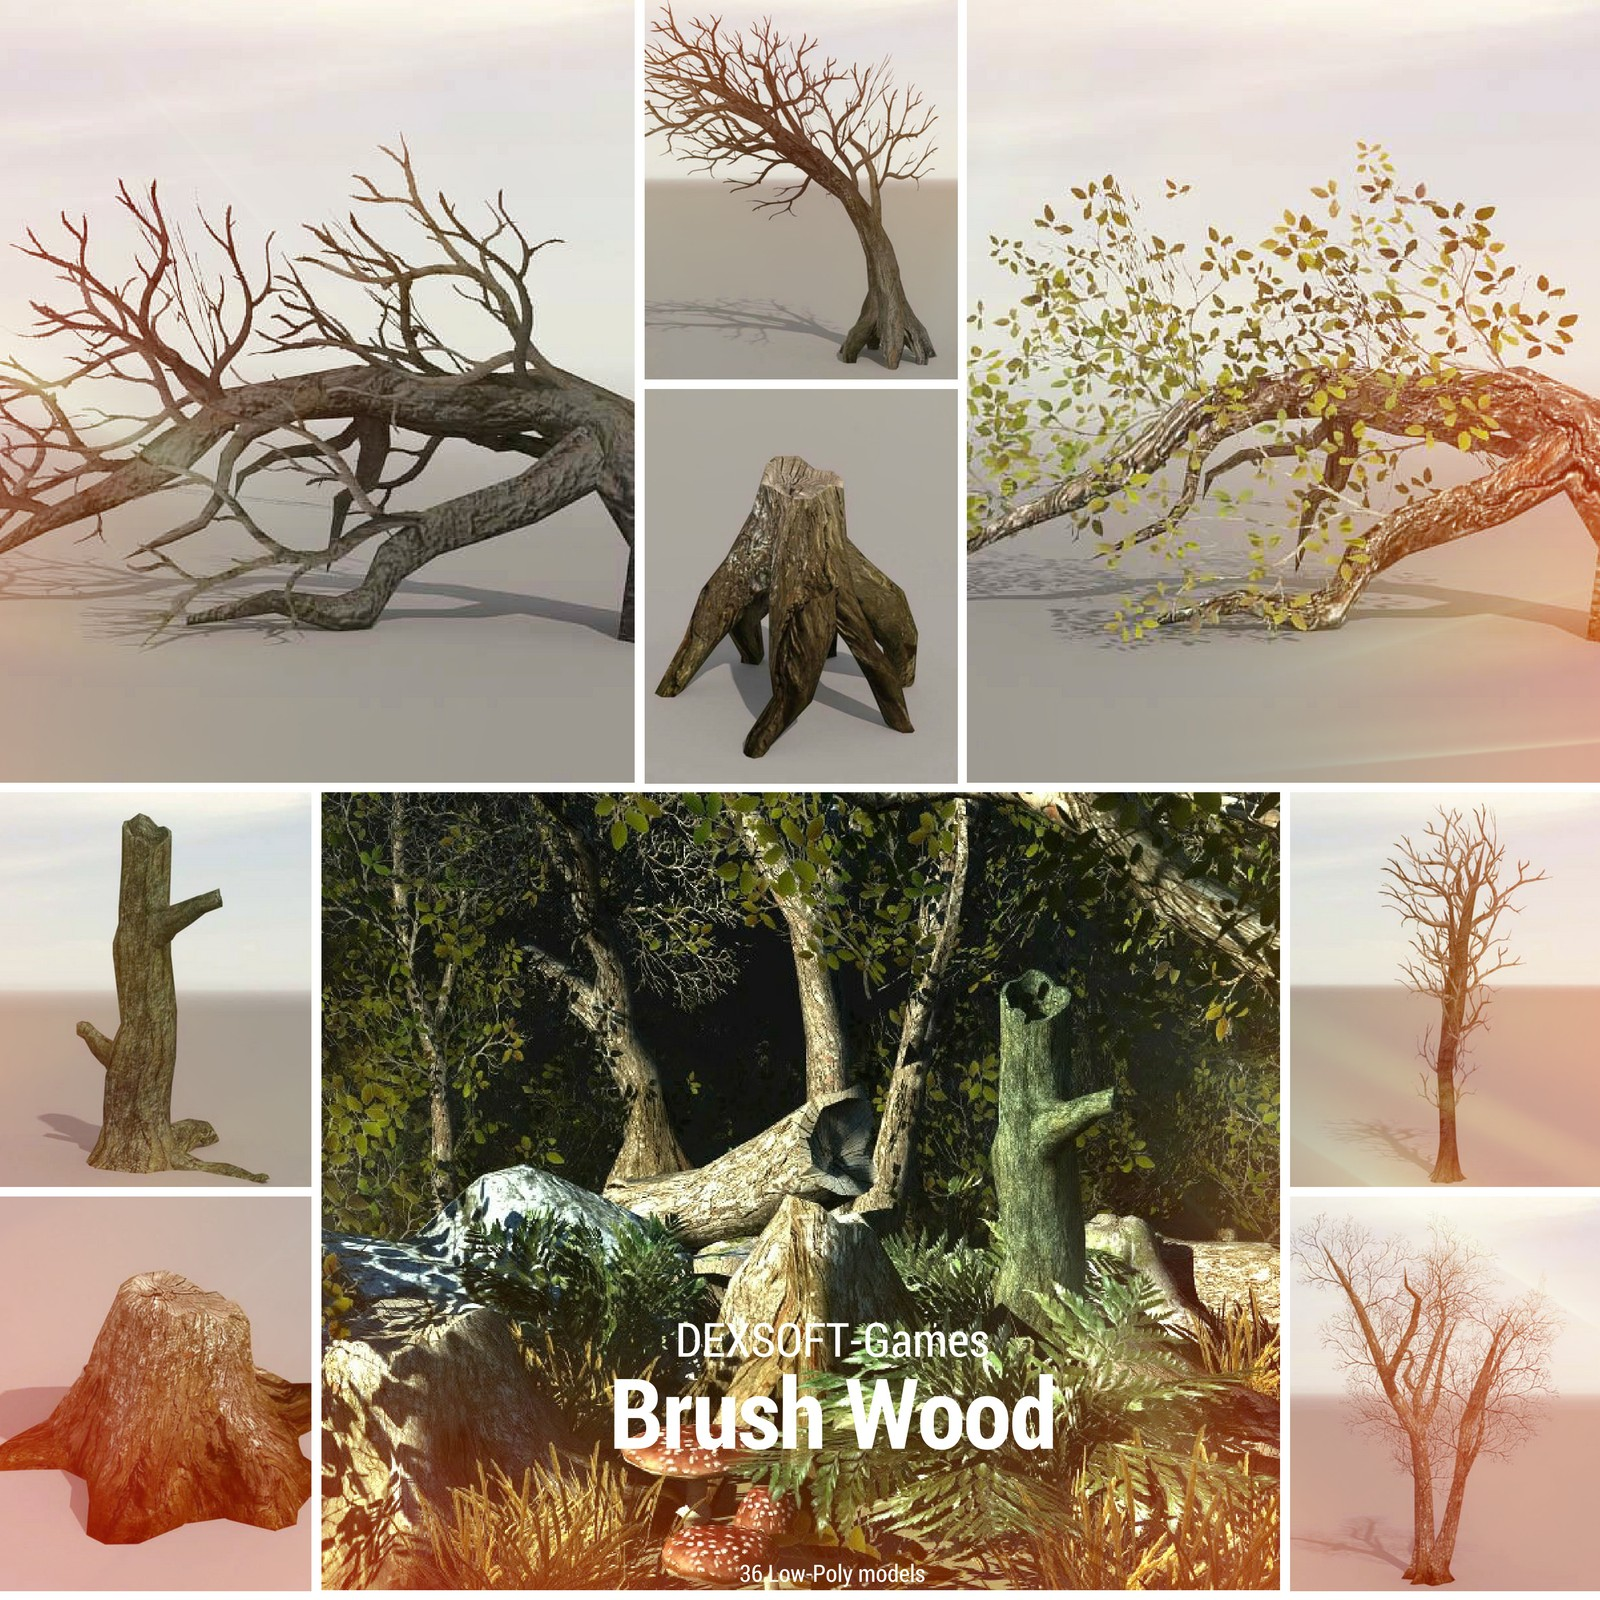 Brush Wood - Game models pack